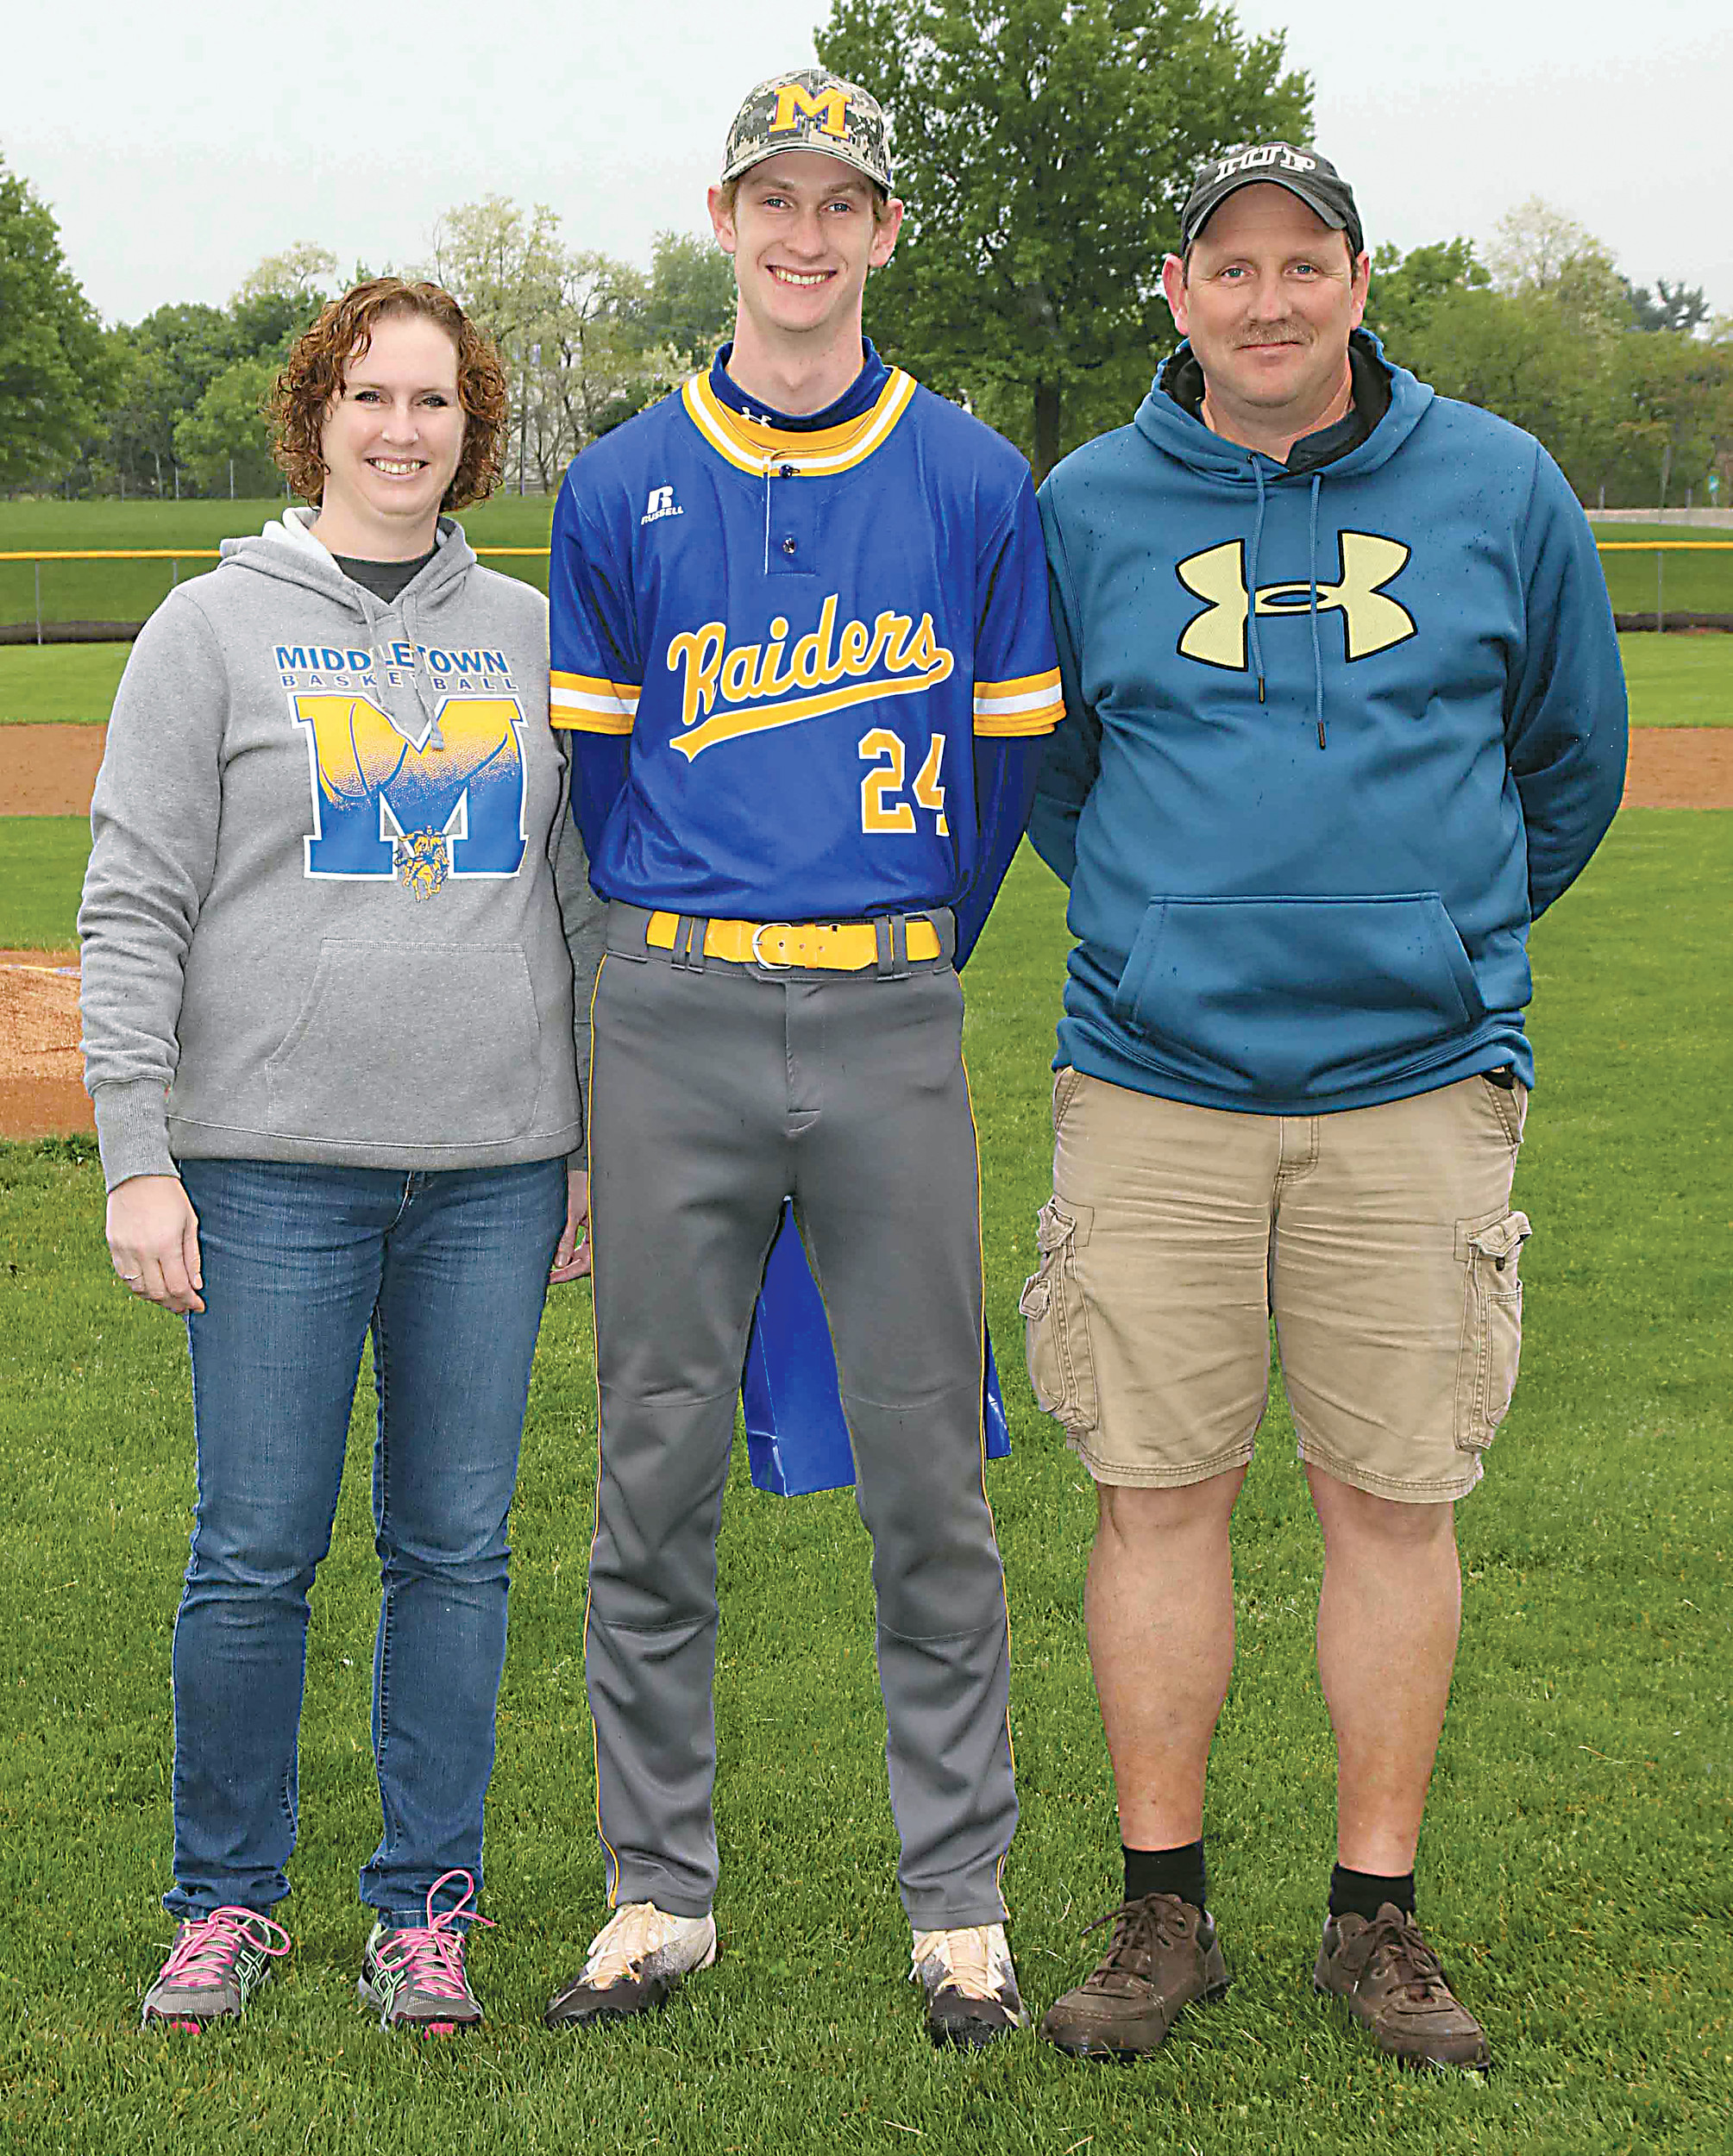 Michael Mattes with parents Dawn and Bill Mattes.